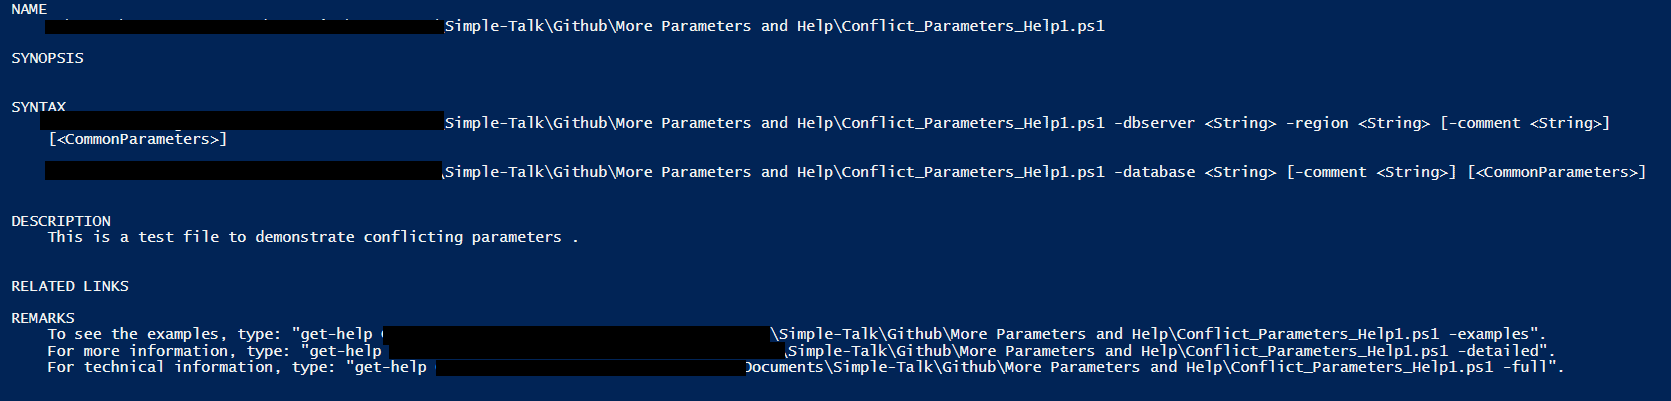 word image 11 How to Add Help to PowerShell Scripts